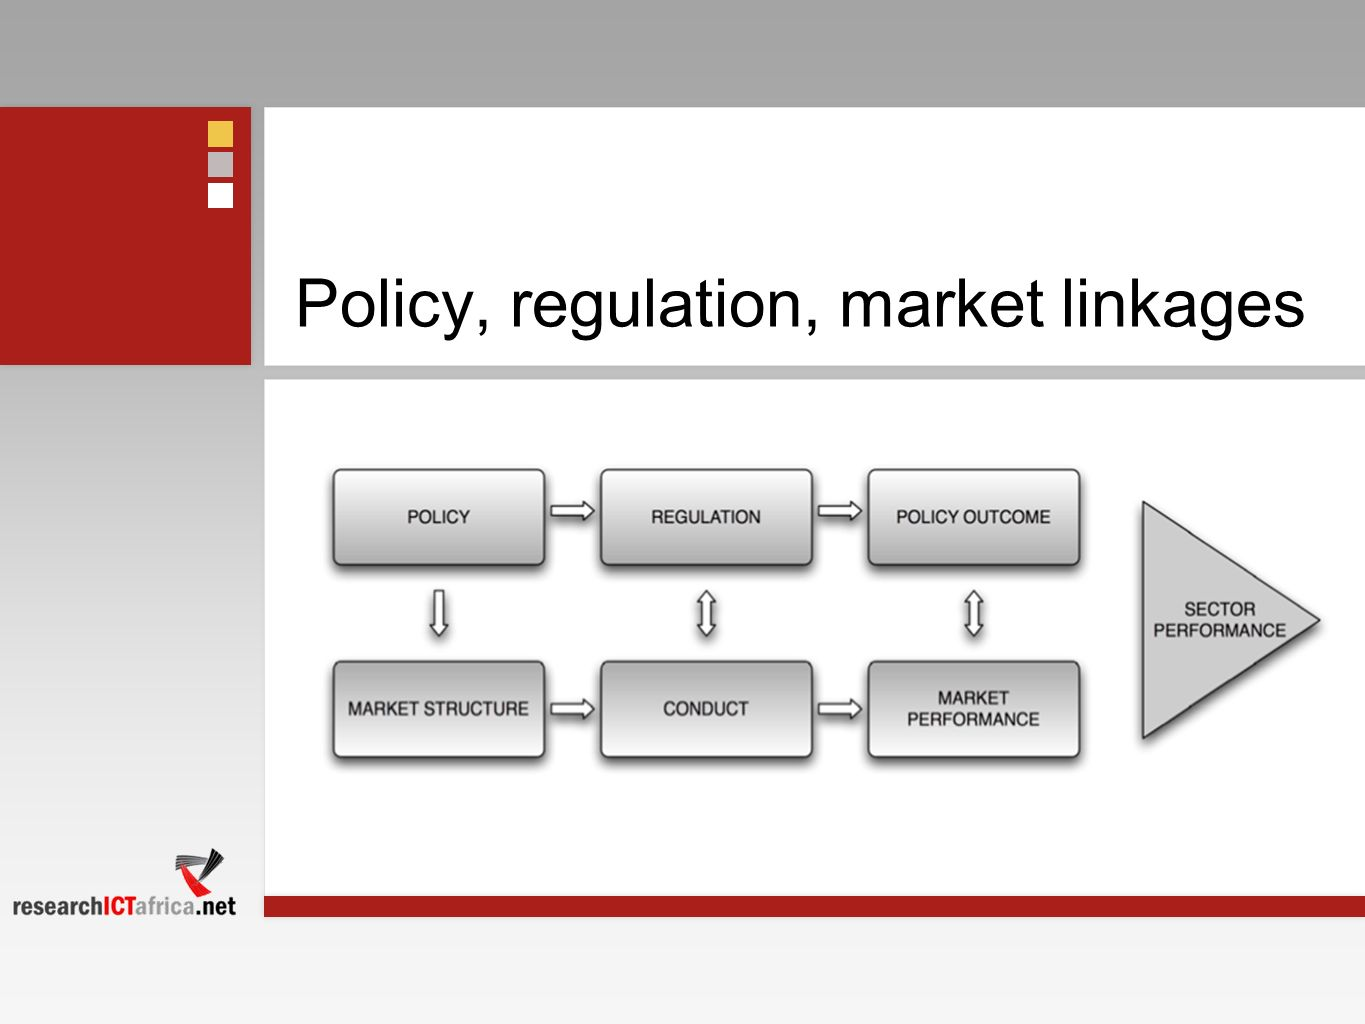 Policy, regulation, market linkages